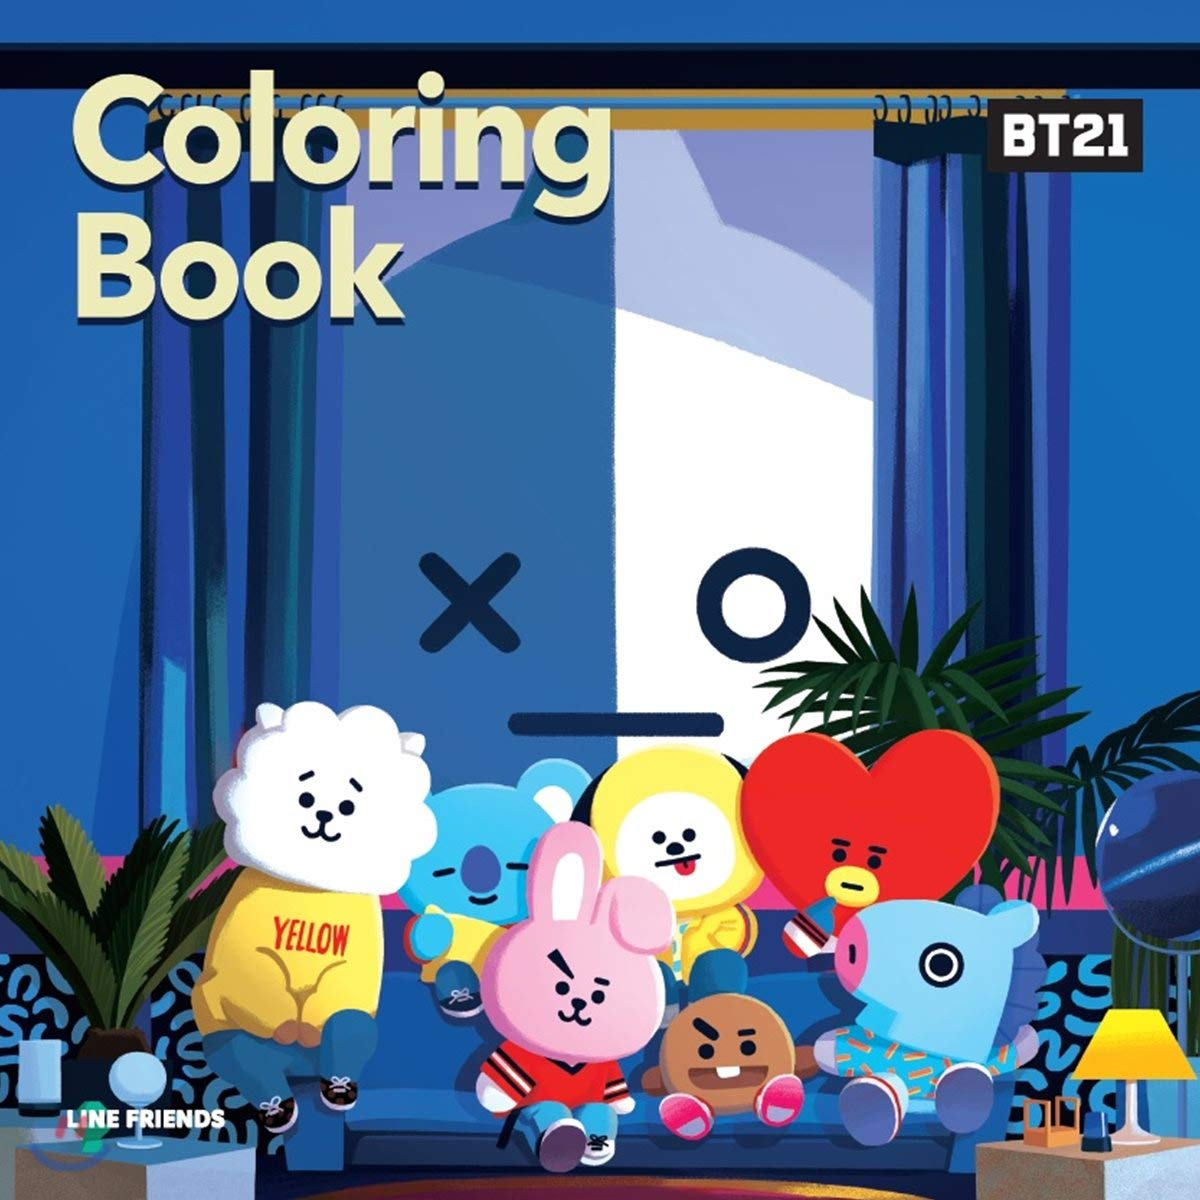 Bt21 Coloring Book Korean Edition Buy Online In Guernsey At Guernsey Desertcart Com Productid 132682605